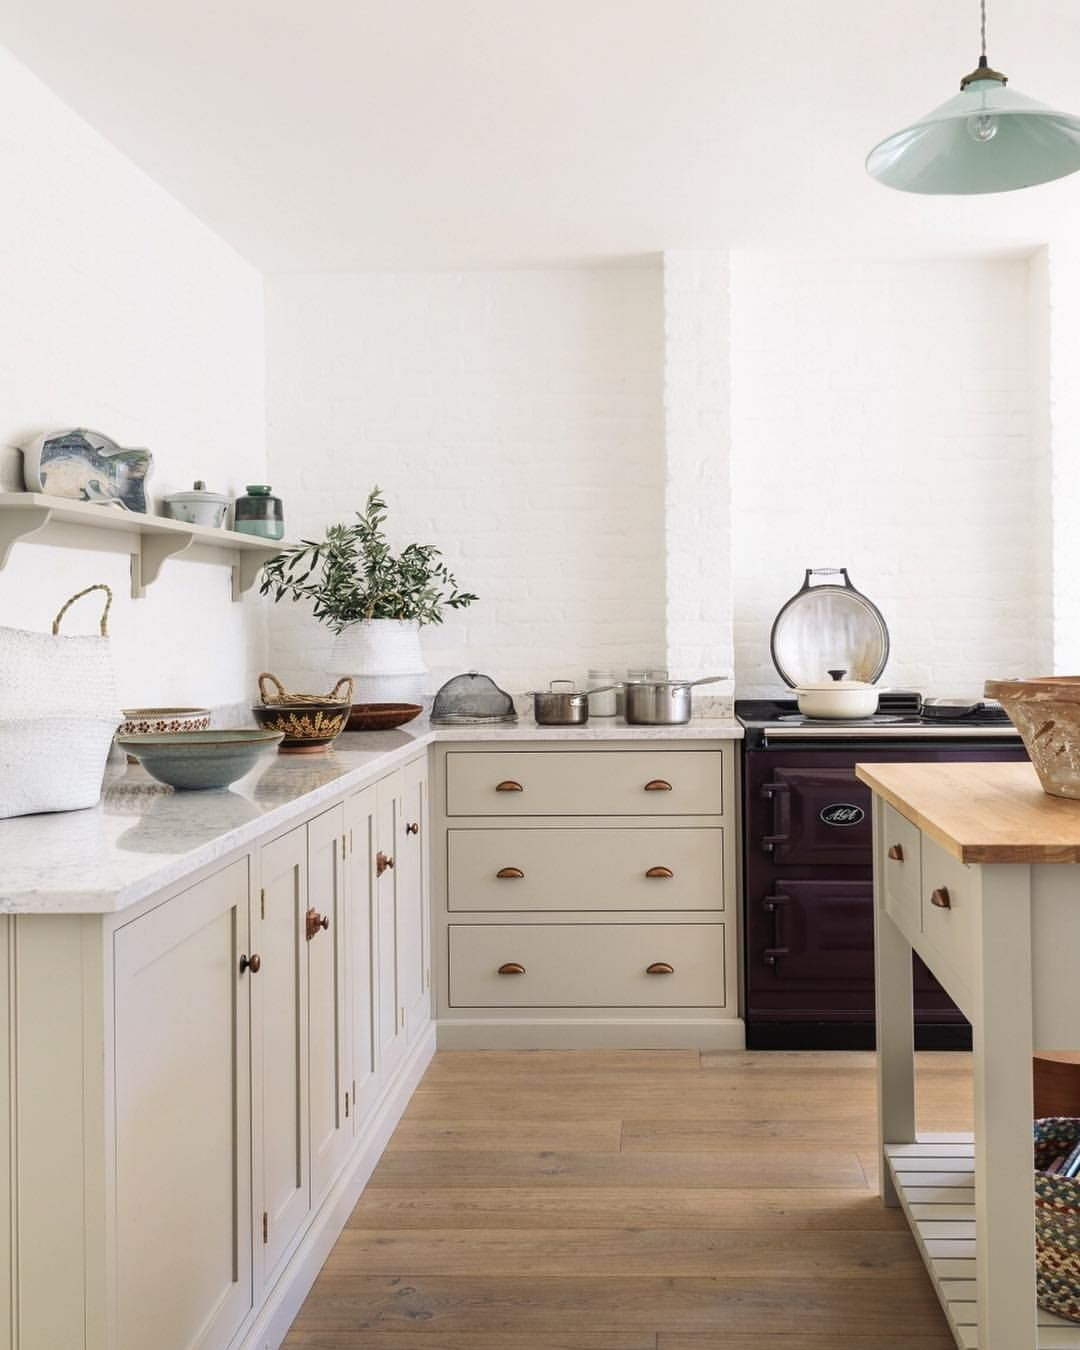 Devol Kitchens Devolkitchens On Instagram Beautifully Simple Shaker Cupboards Painted In Mushroom With Taupe Kitchen Kitchen Design Kitchen Inspirations